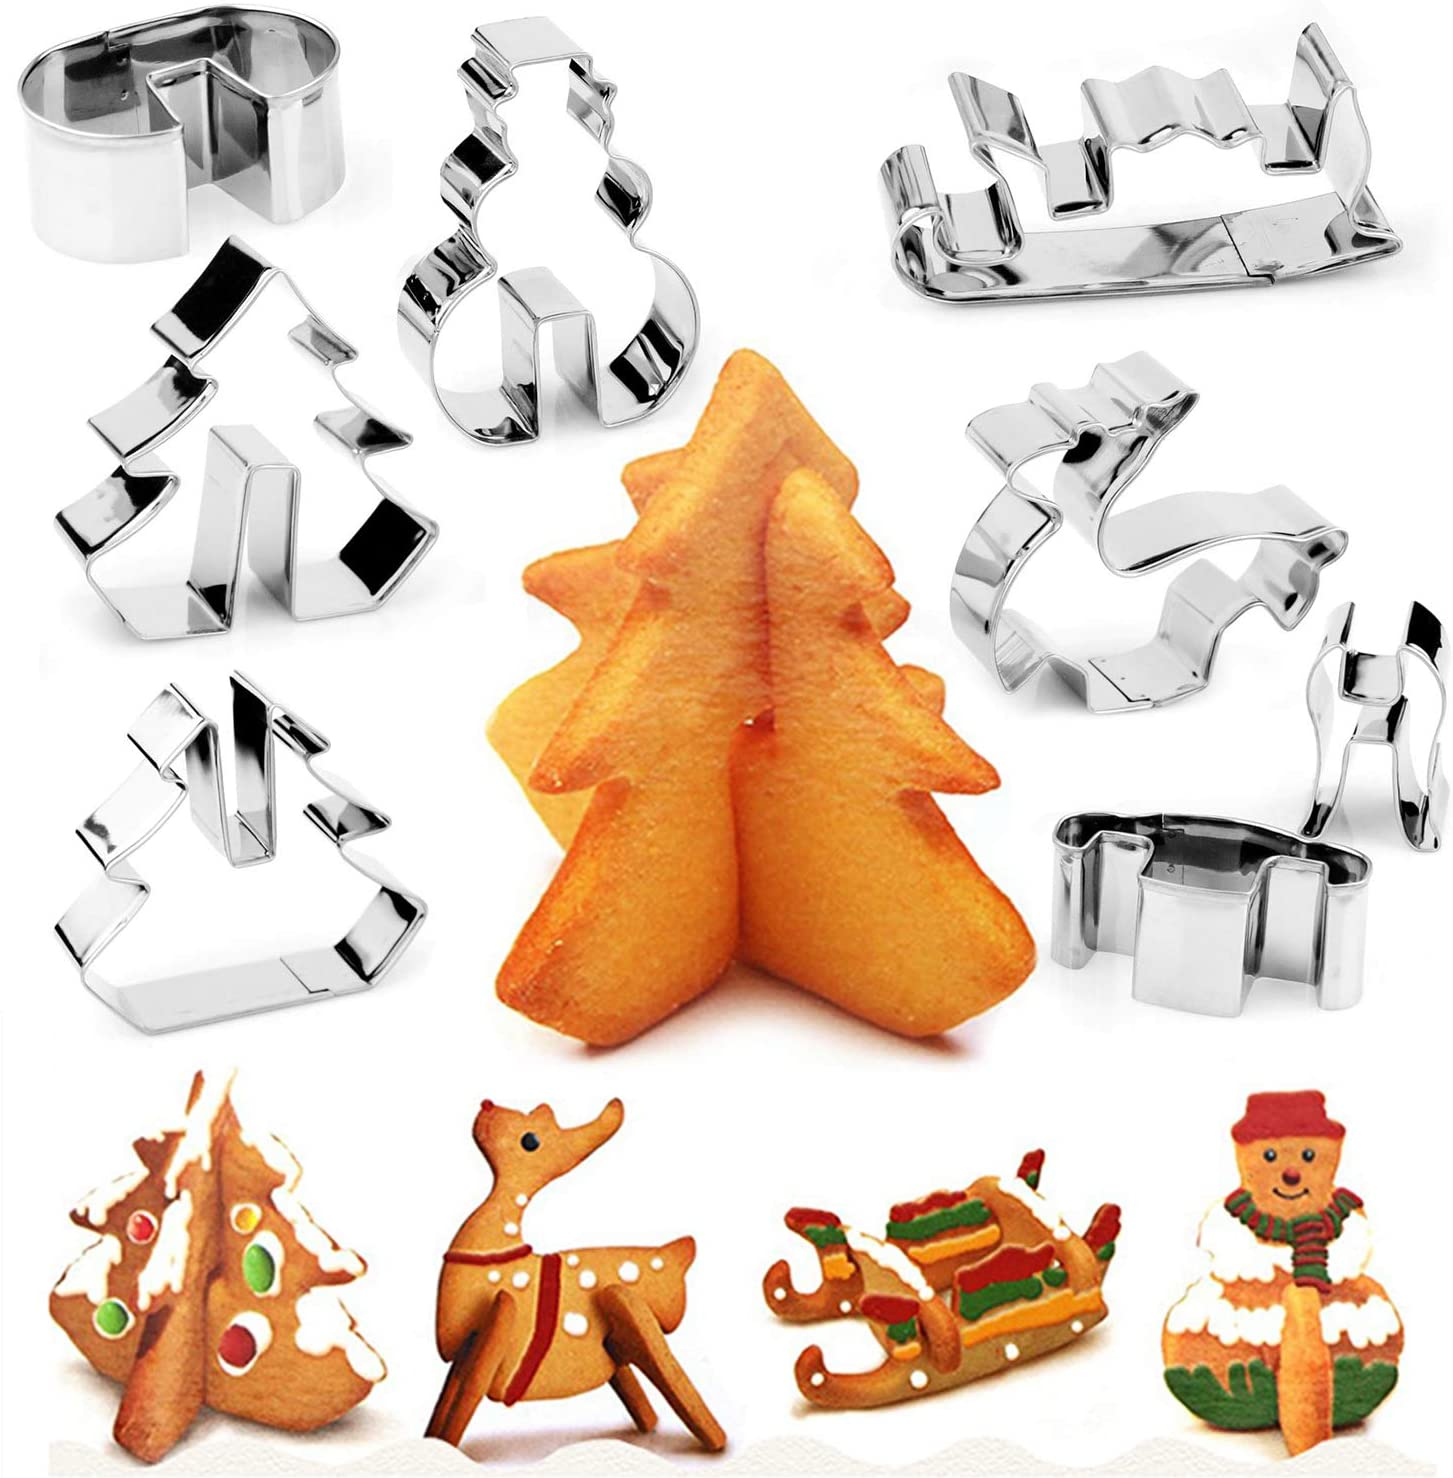 3D Christmas Cookie Cutter (8pcs)